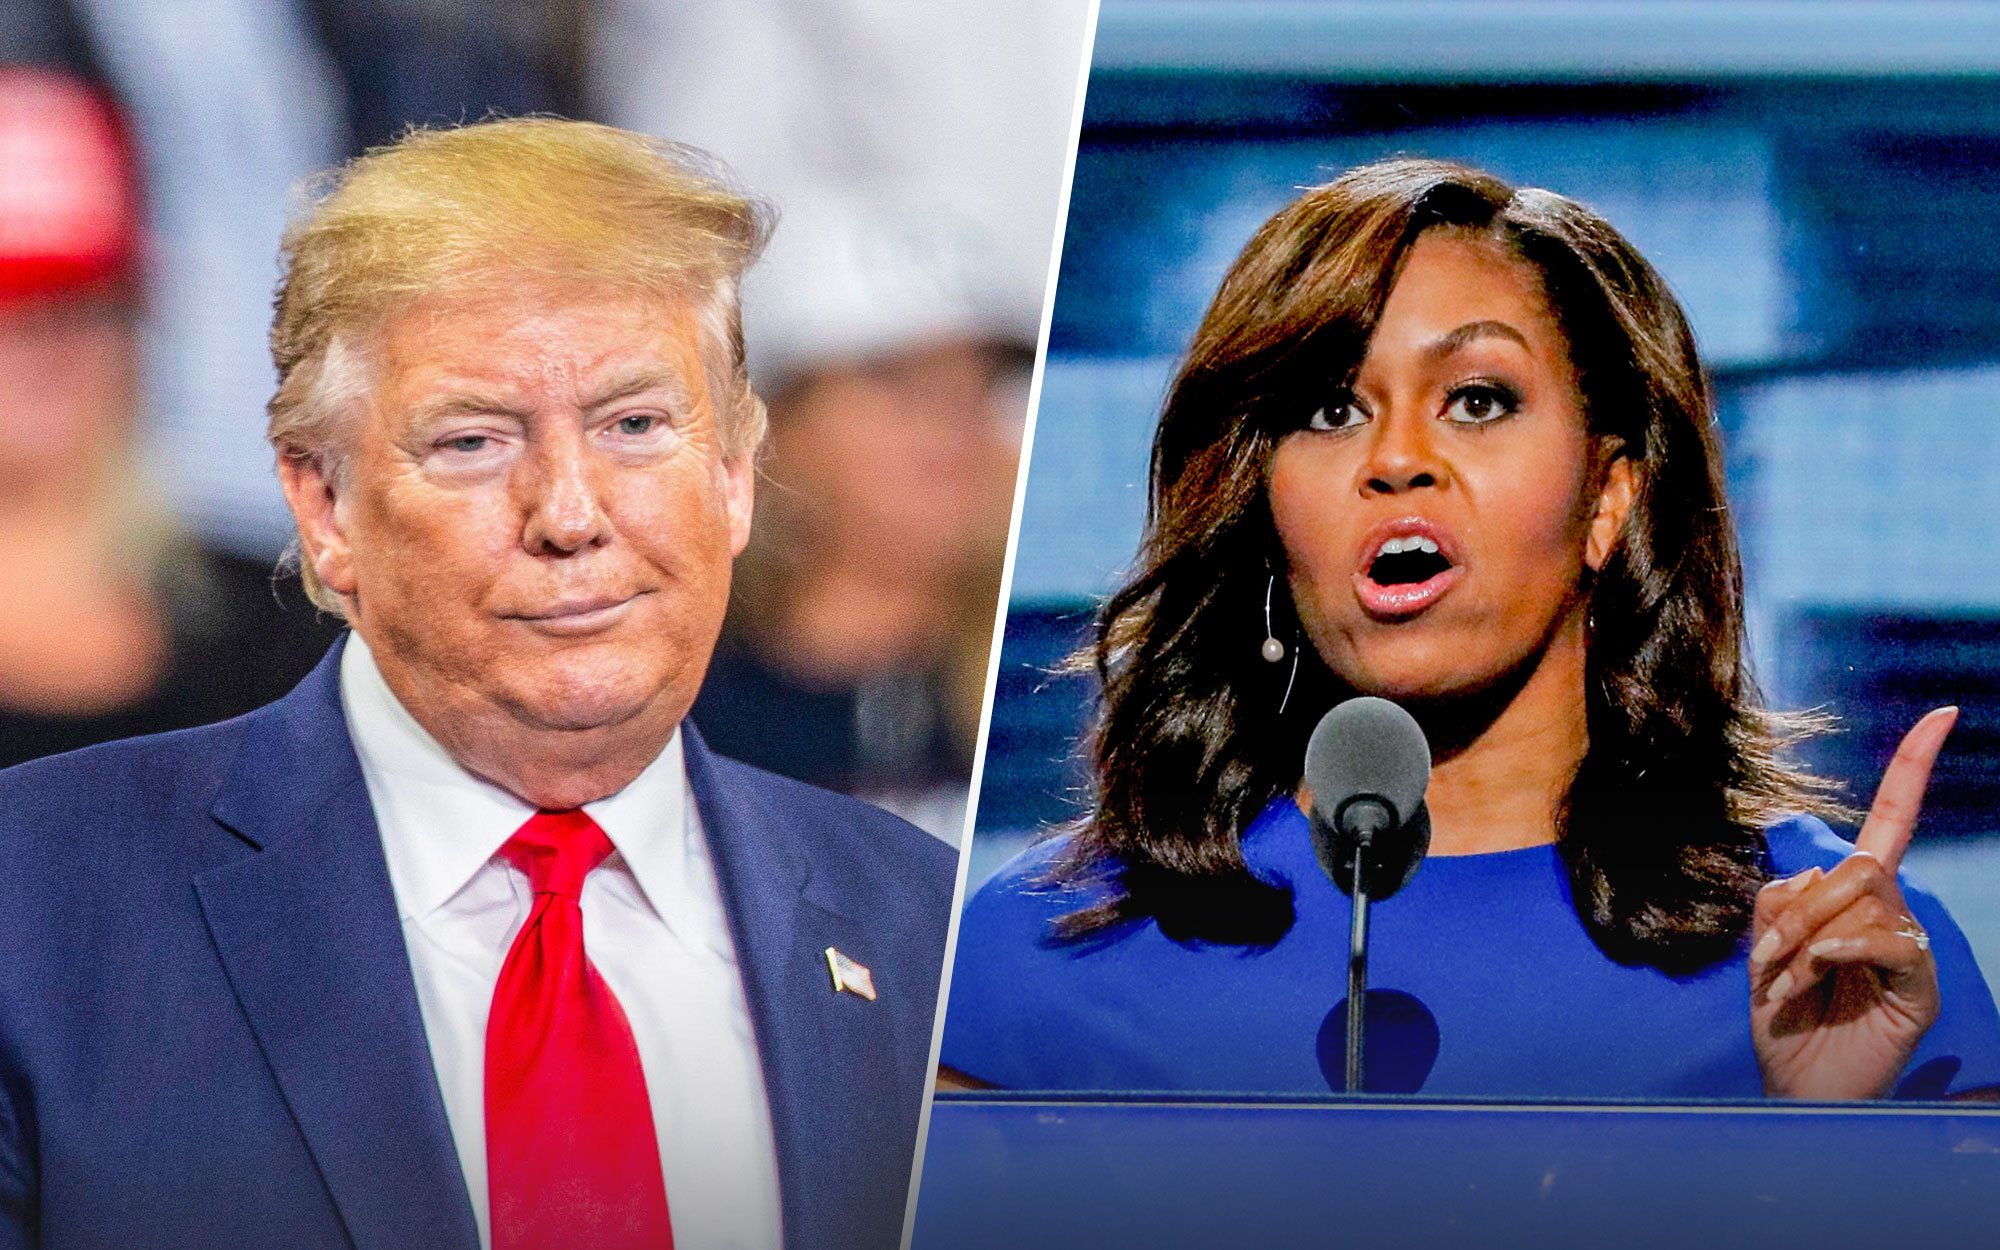 Trump Brutally Humiliates Michelle Obama on Her Birthday Over Her School Lunch Program